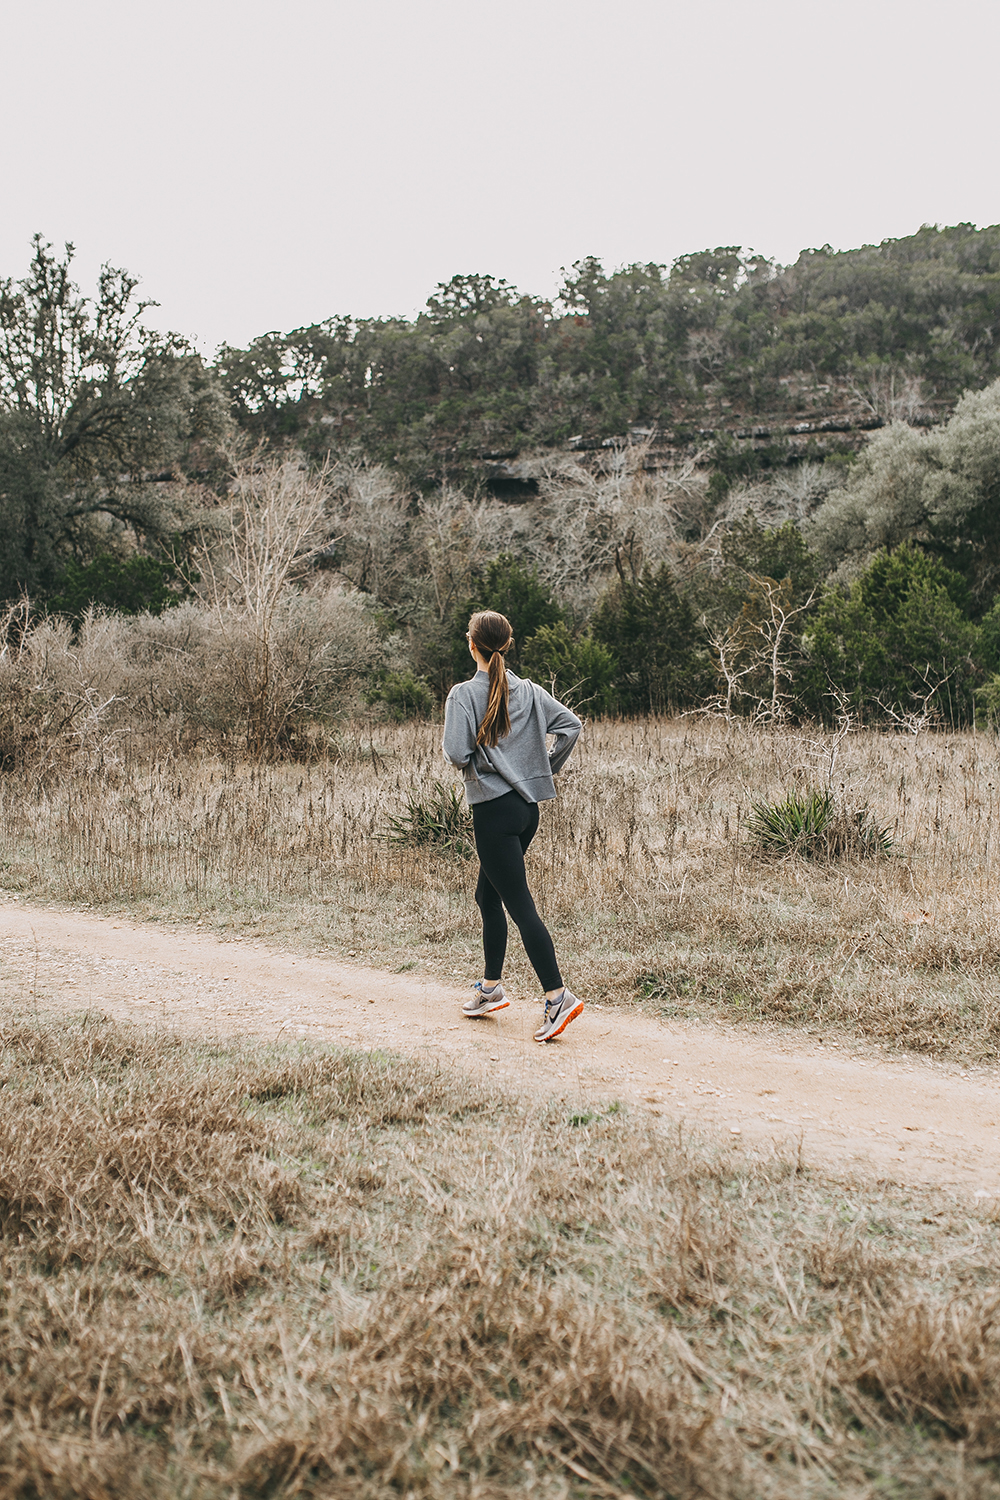 livvyland-blog-olivia-watson-austin-texas-greenbelt-trail-run-hike-nike-air-zoom-pegasus-36-running-shoes-1